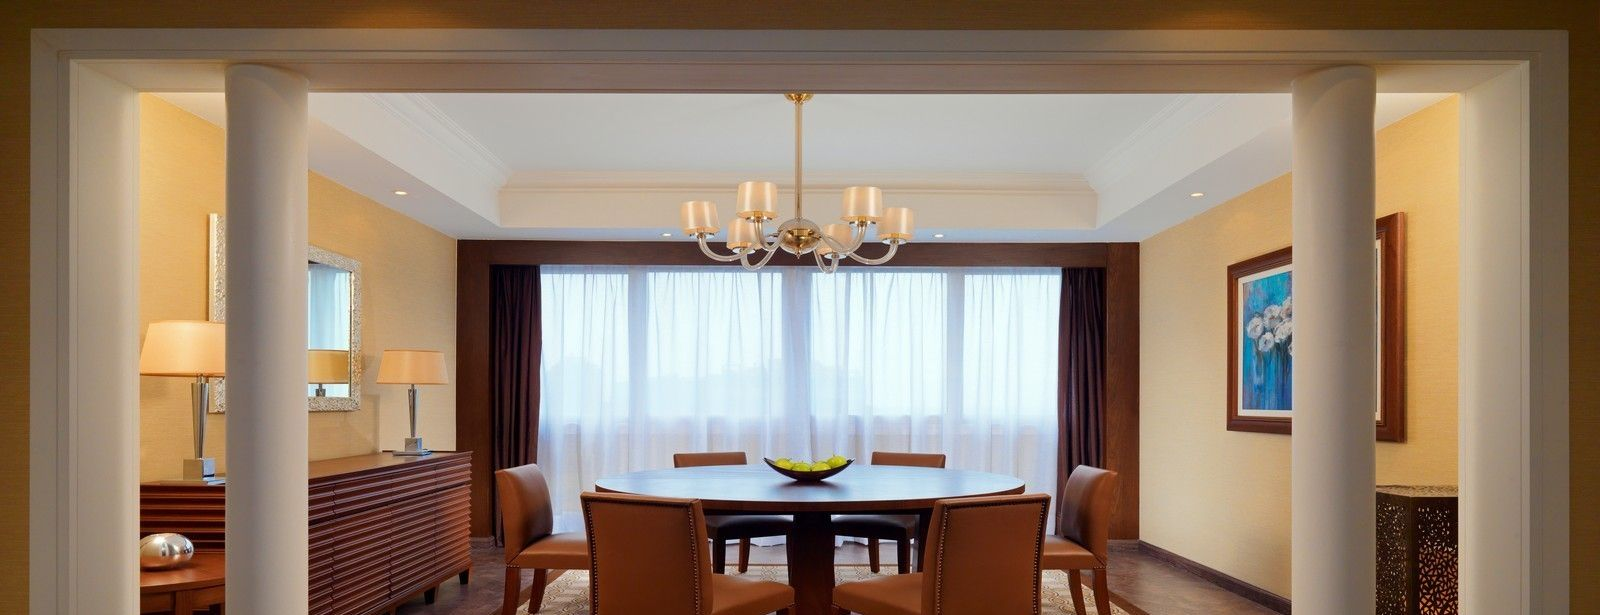 Presidential Dining Room